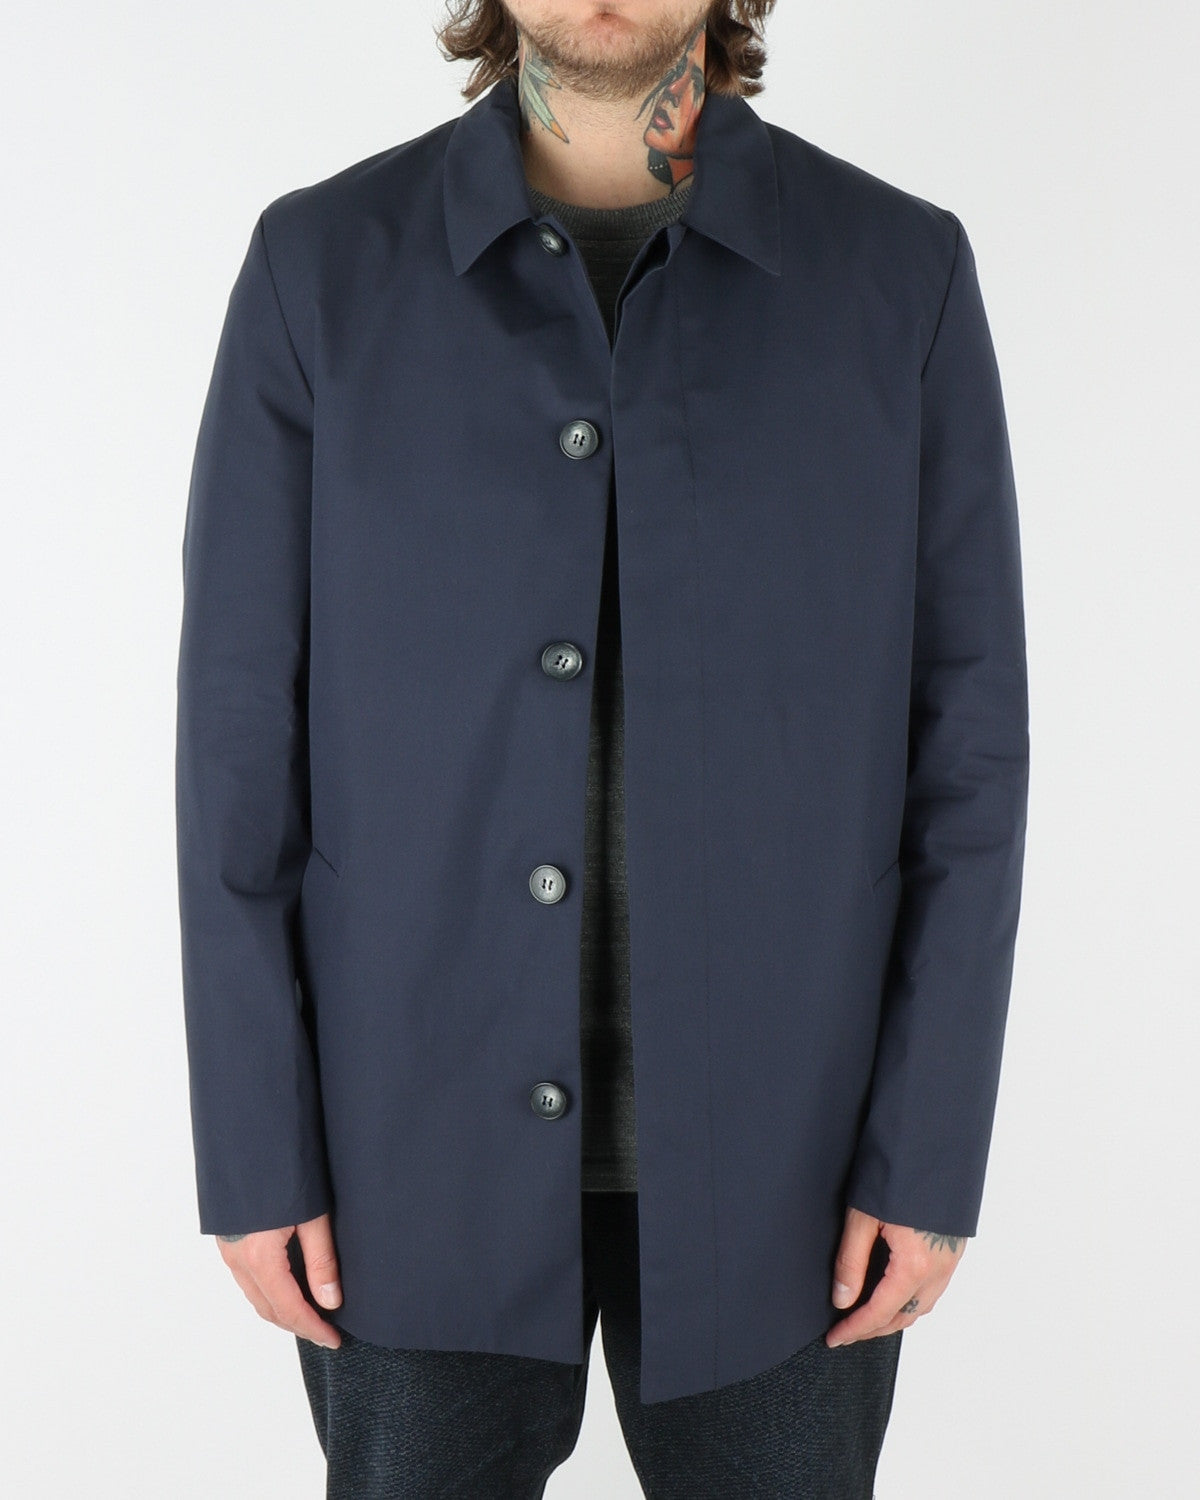 journal clothing_lost tech coat_navy_view_1_3